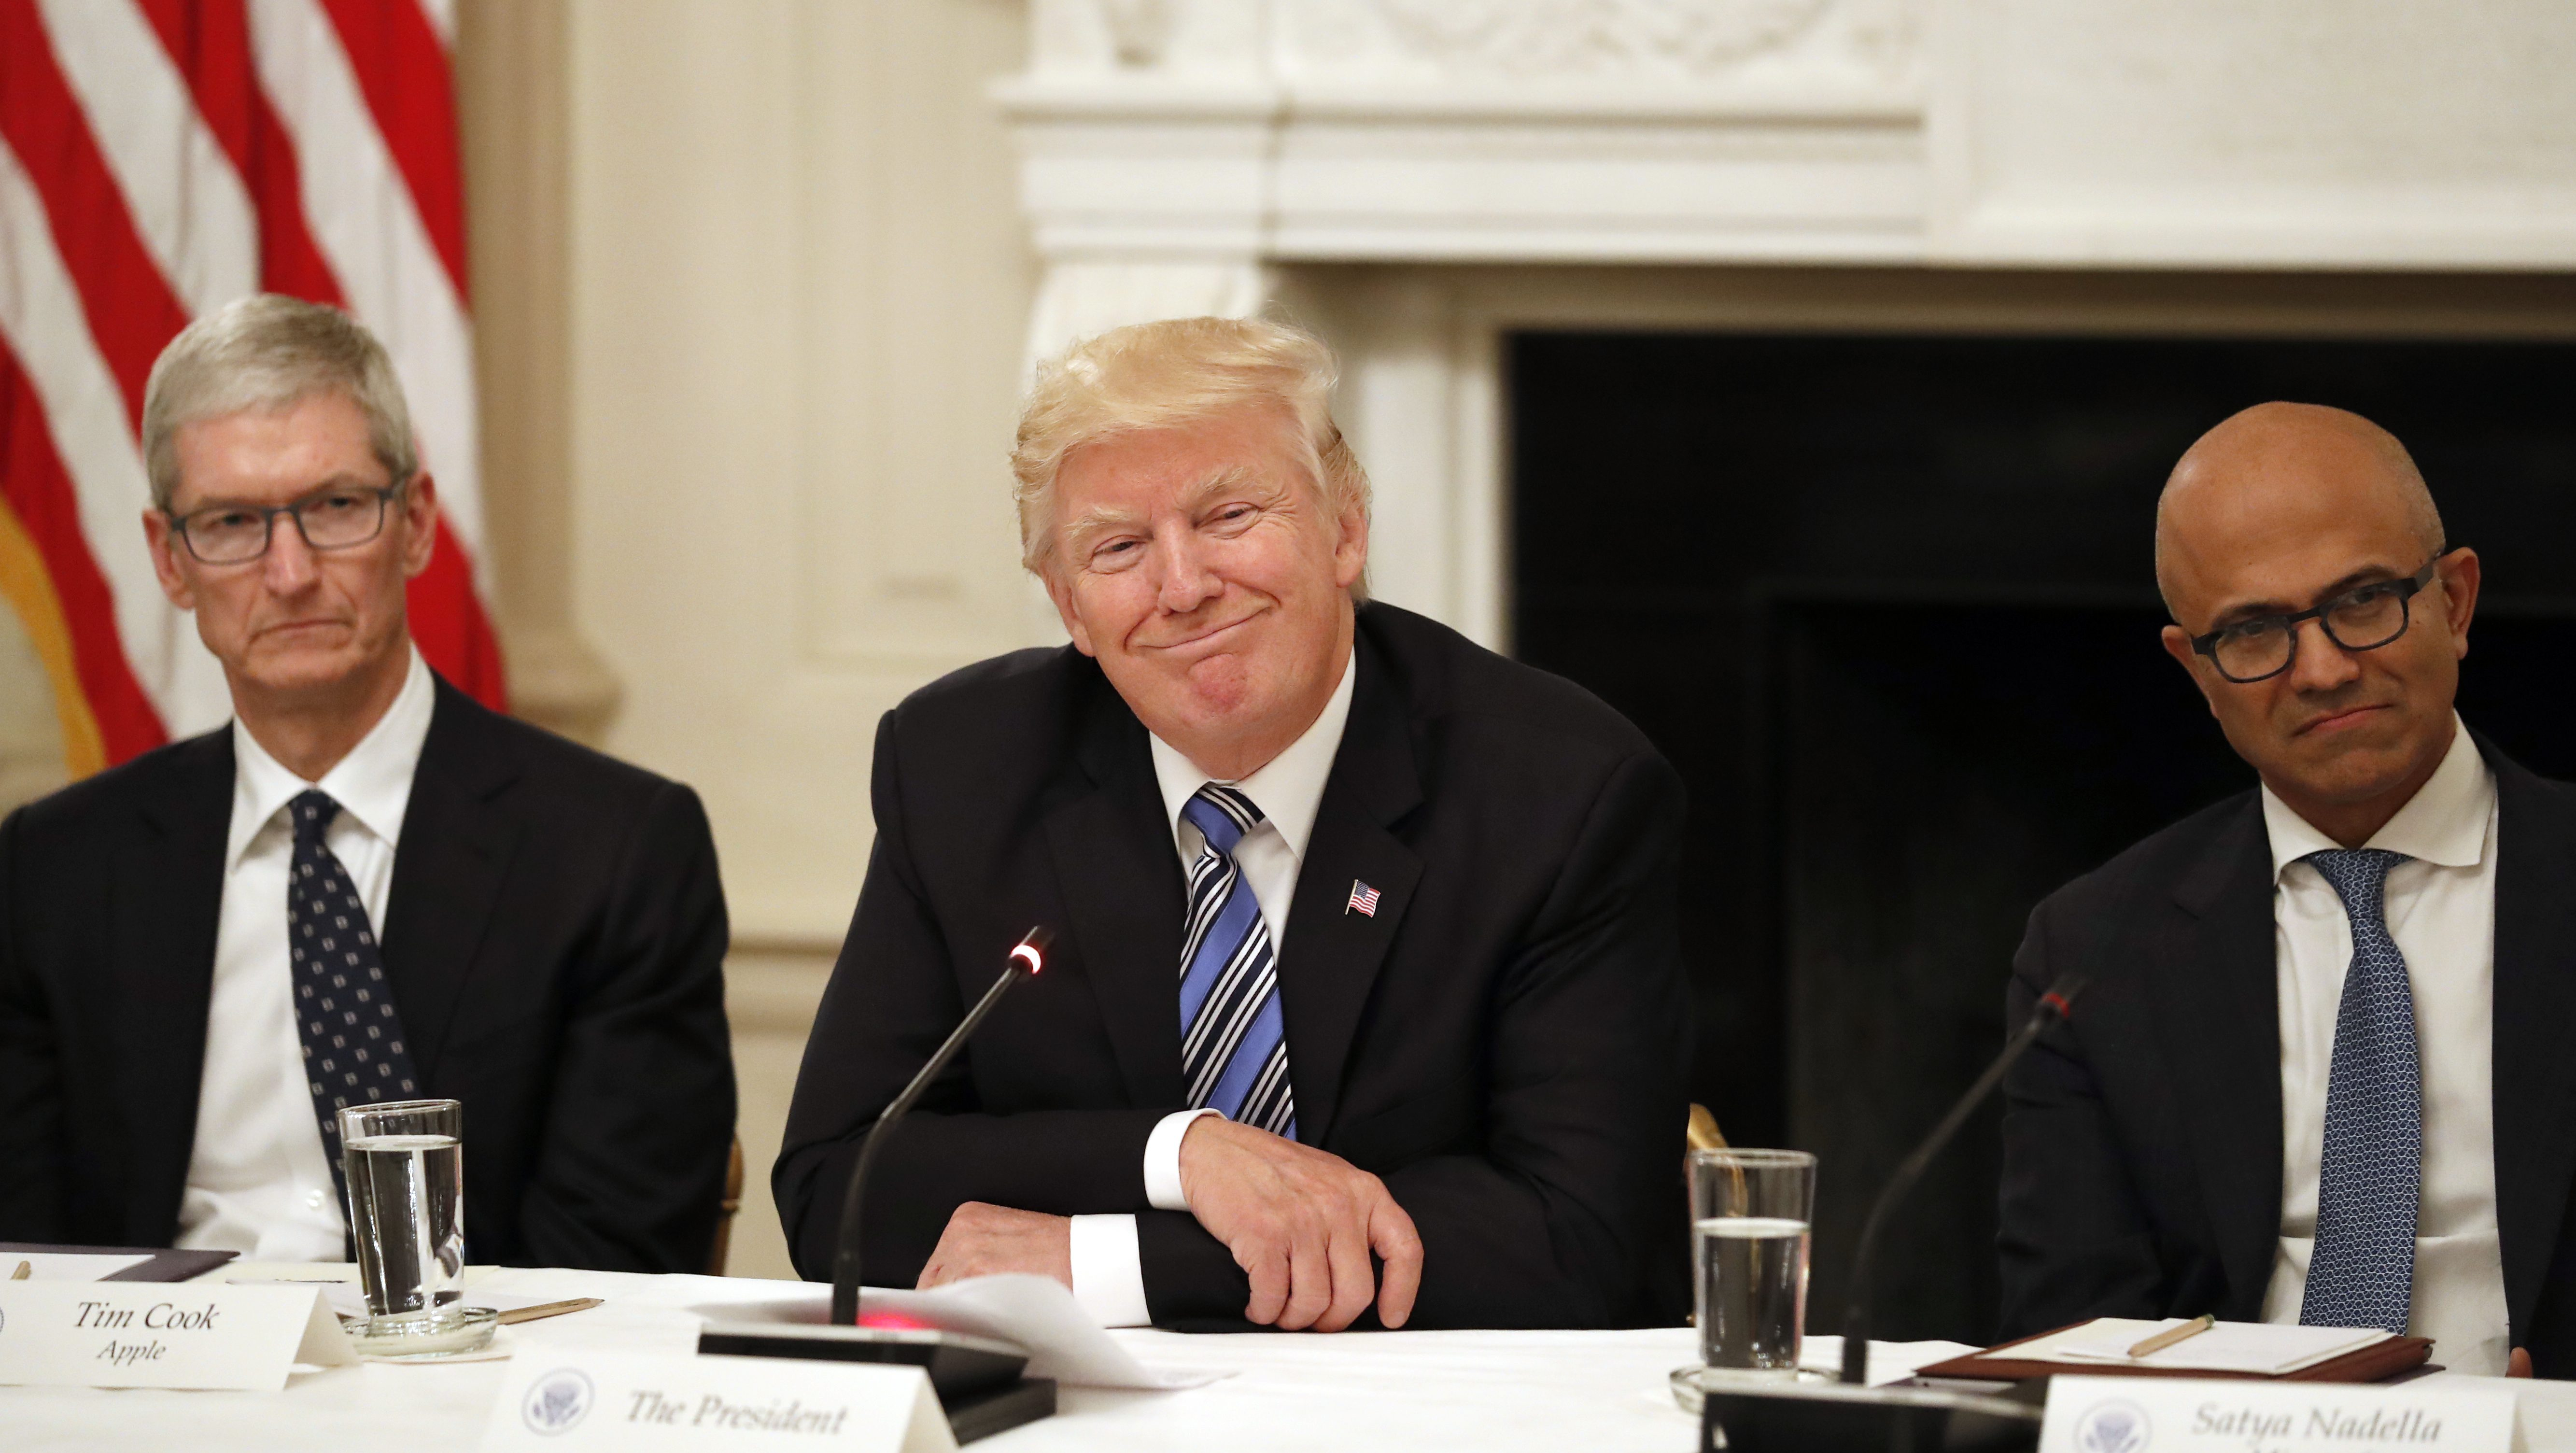 President Donald Trump, center, smiles as he is seated between Tim Cook, Chief Executive Officer of Apple, left, and Satya Nadella, Chief Executive Officer of Microsoft, right, during an American Technology Council roundtable in the State Dinning Room of the White House, Monday, June 19, 2017, in Washington. (AP Photo/Alex Brandon)